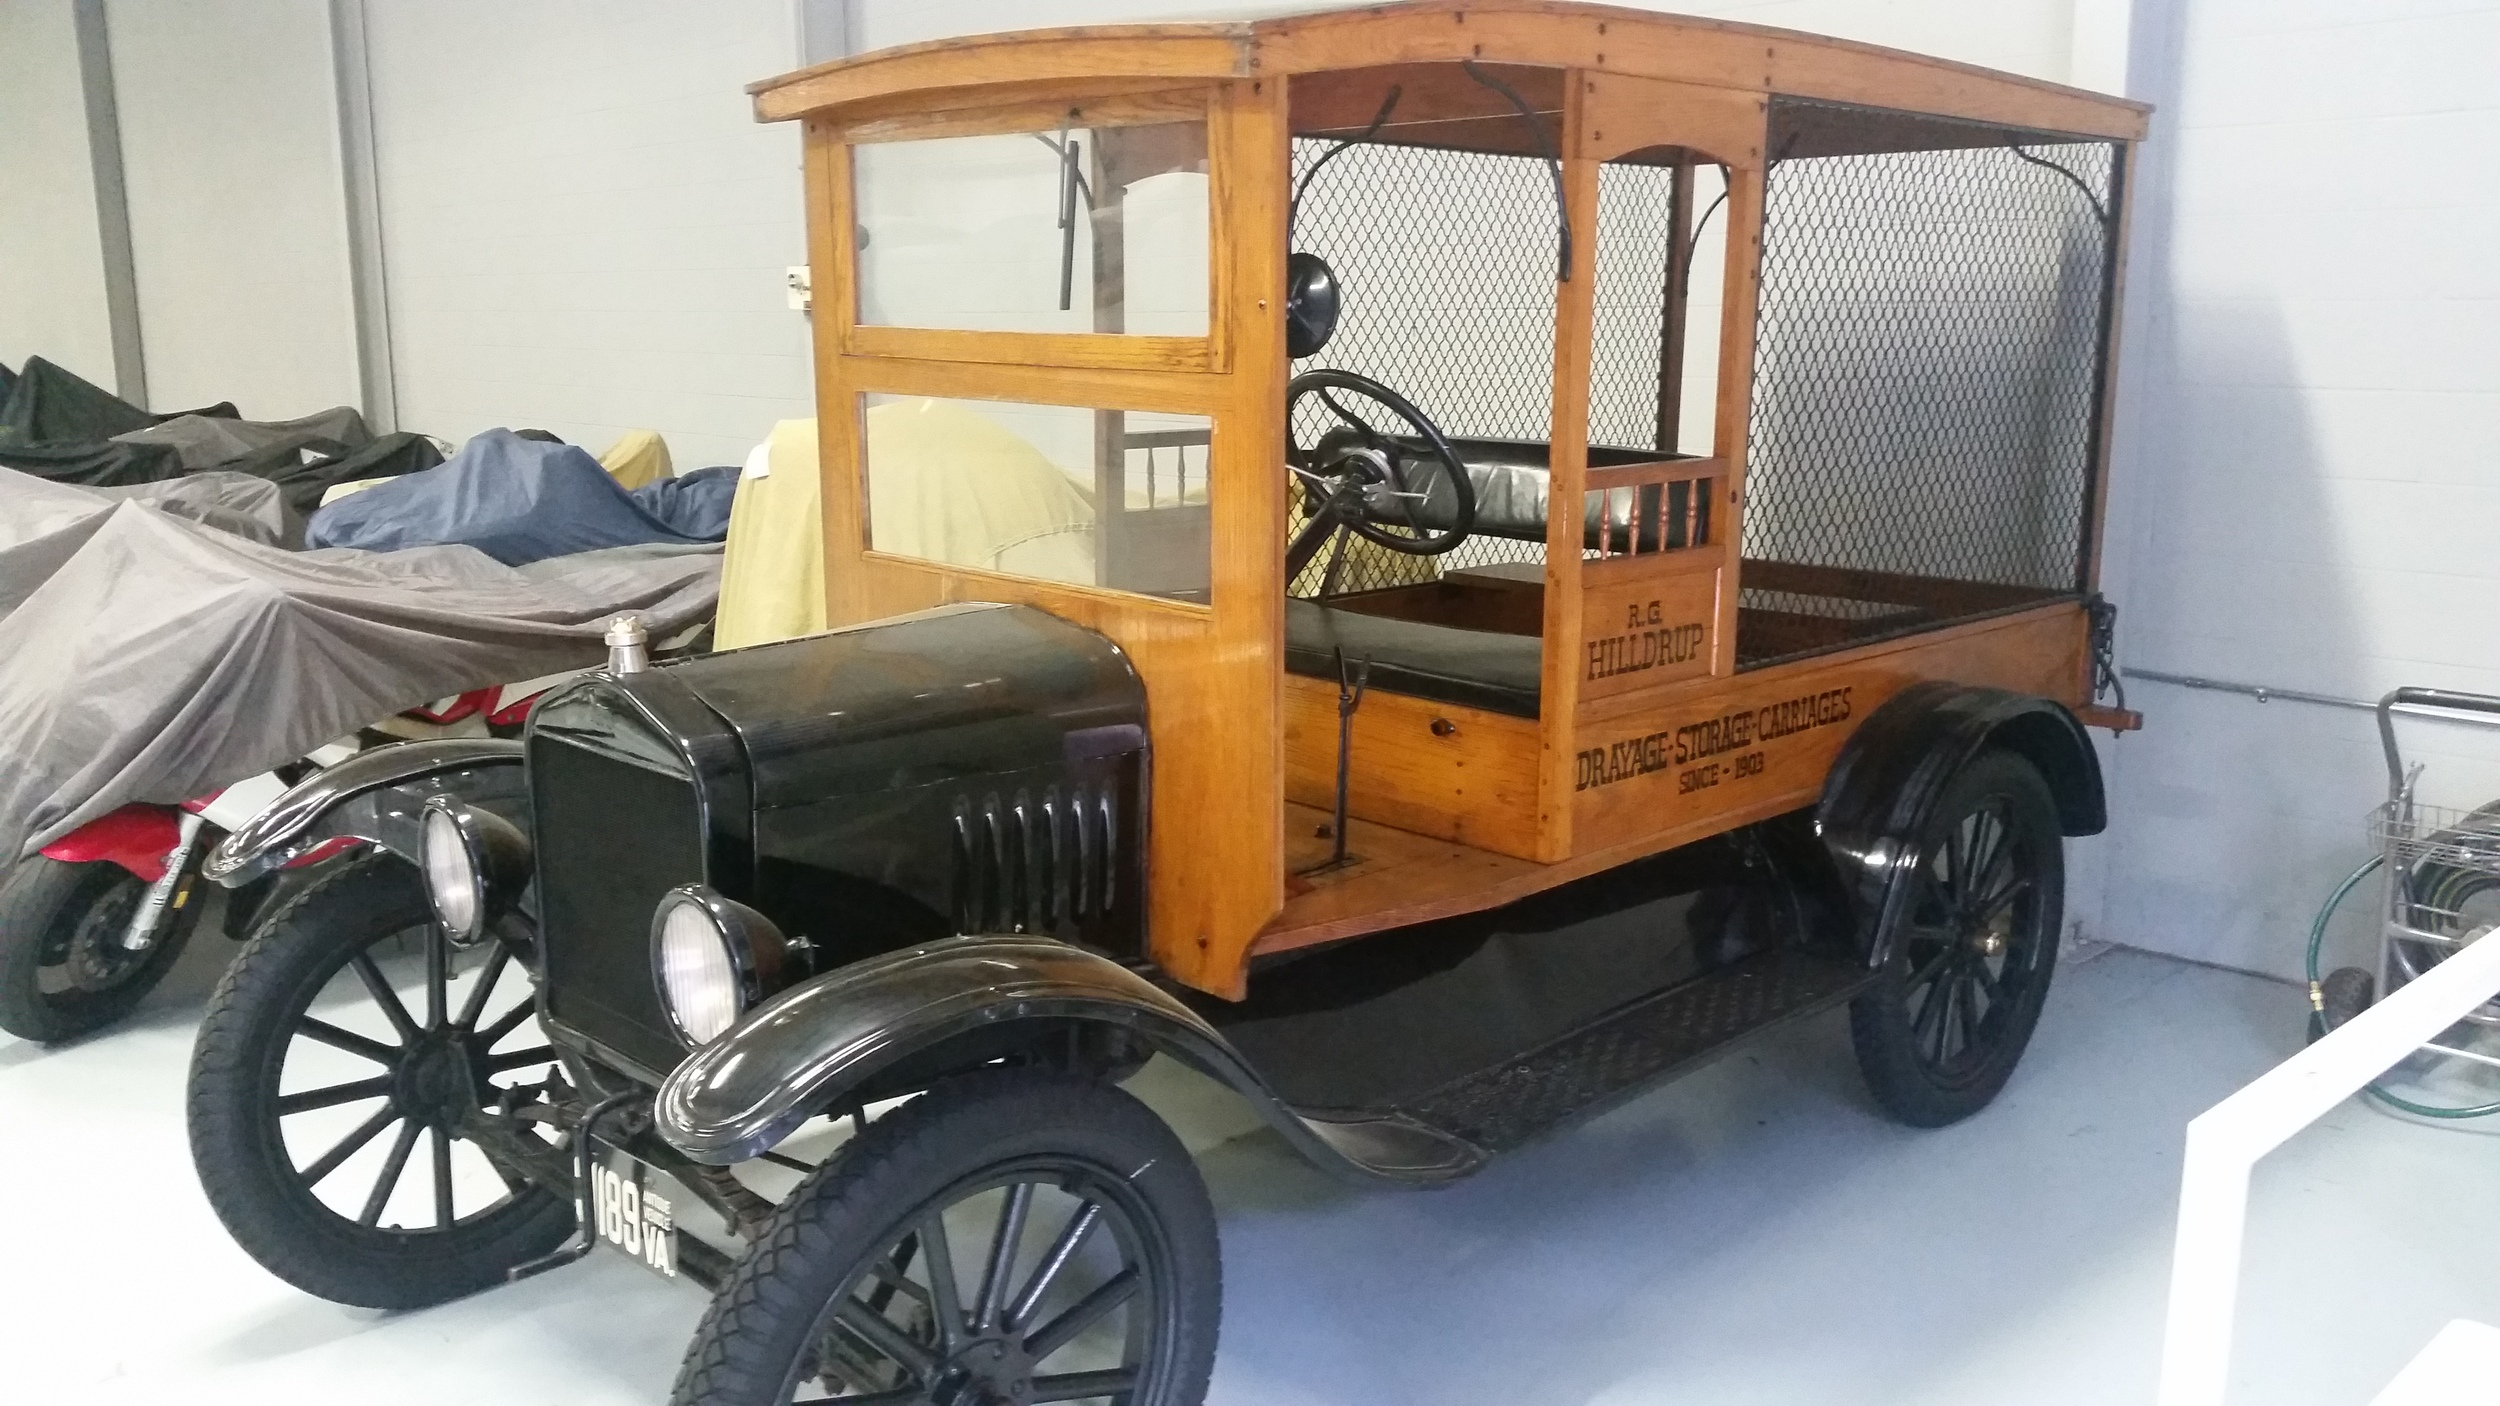 One of Hilldrup's first moving trucks